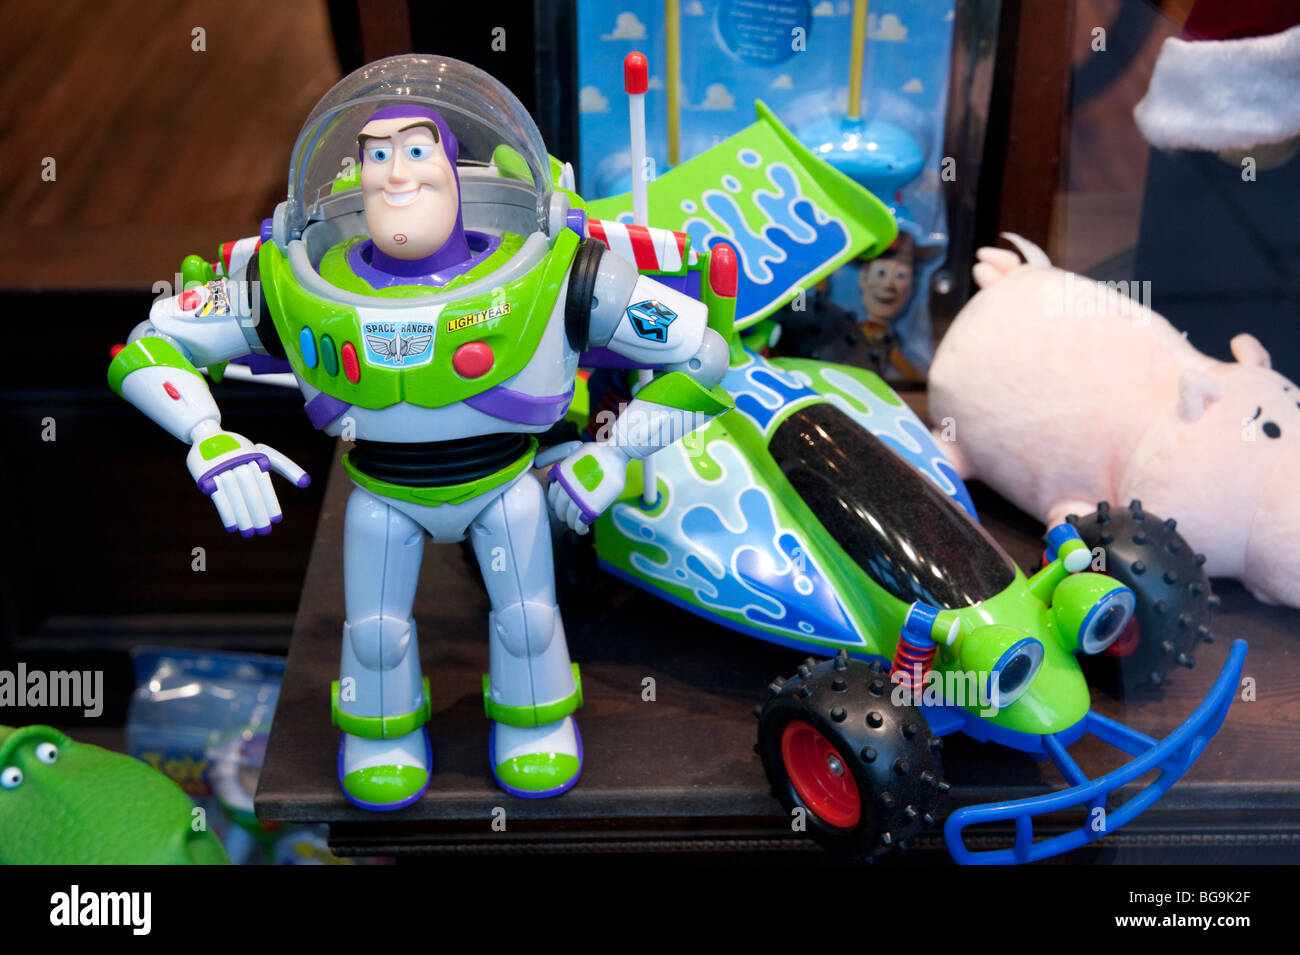 Buzz Lightyear toys in shop window, England, Britain, UK - Stock Image